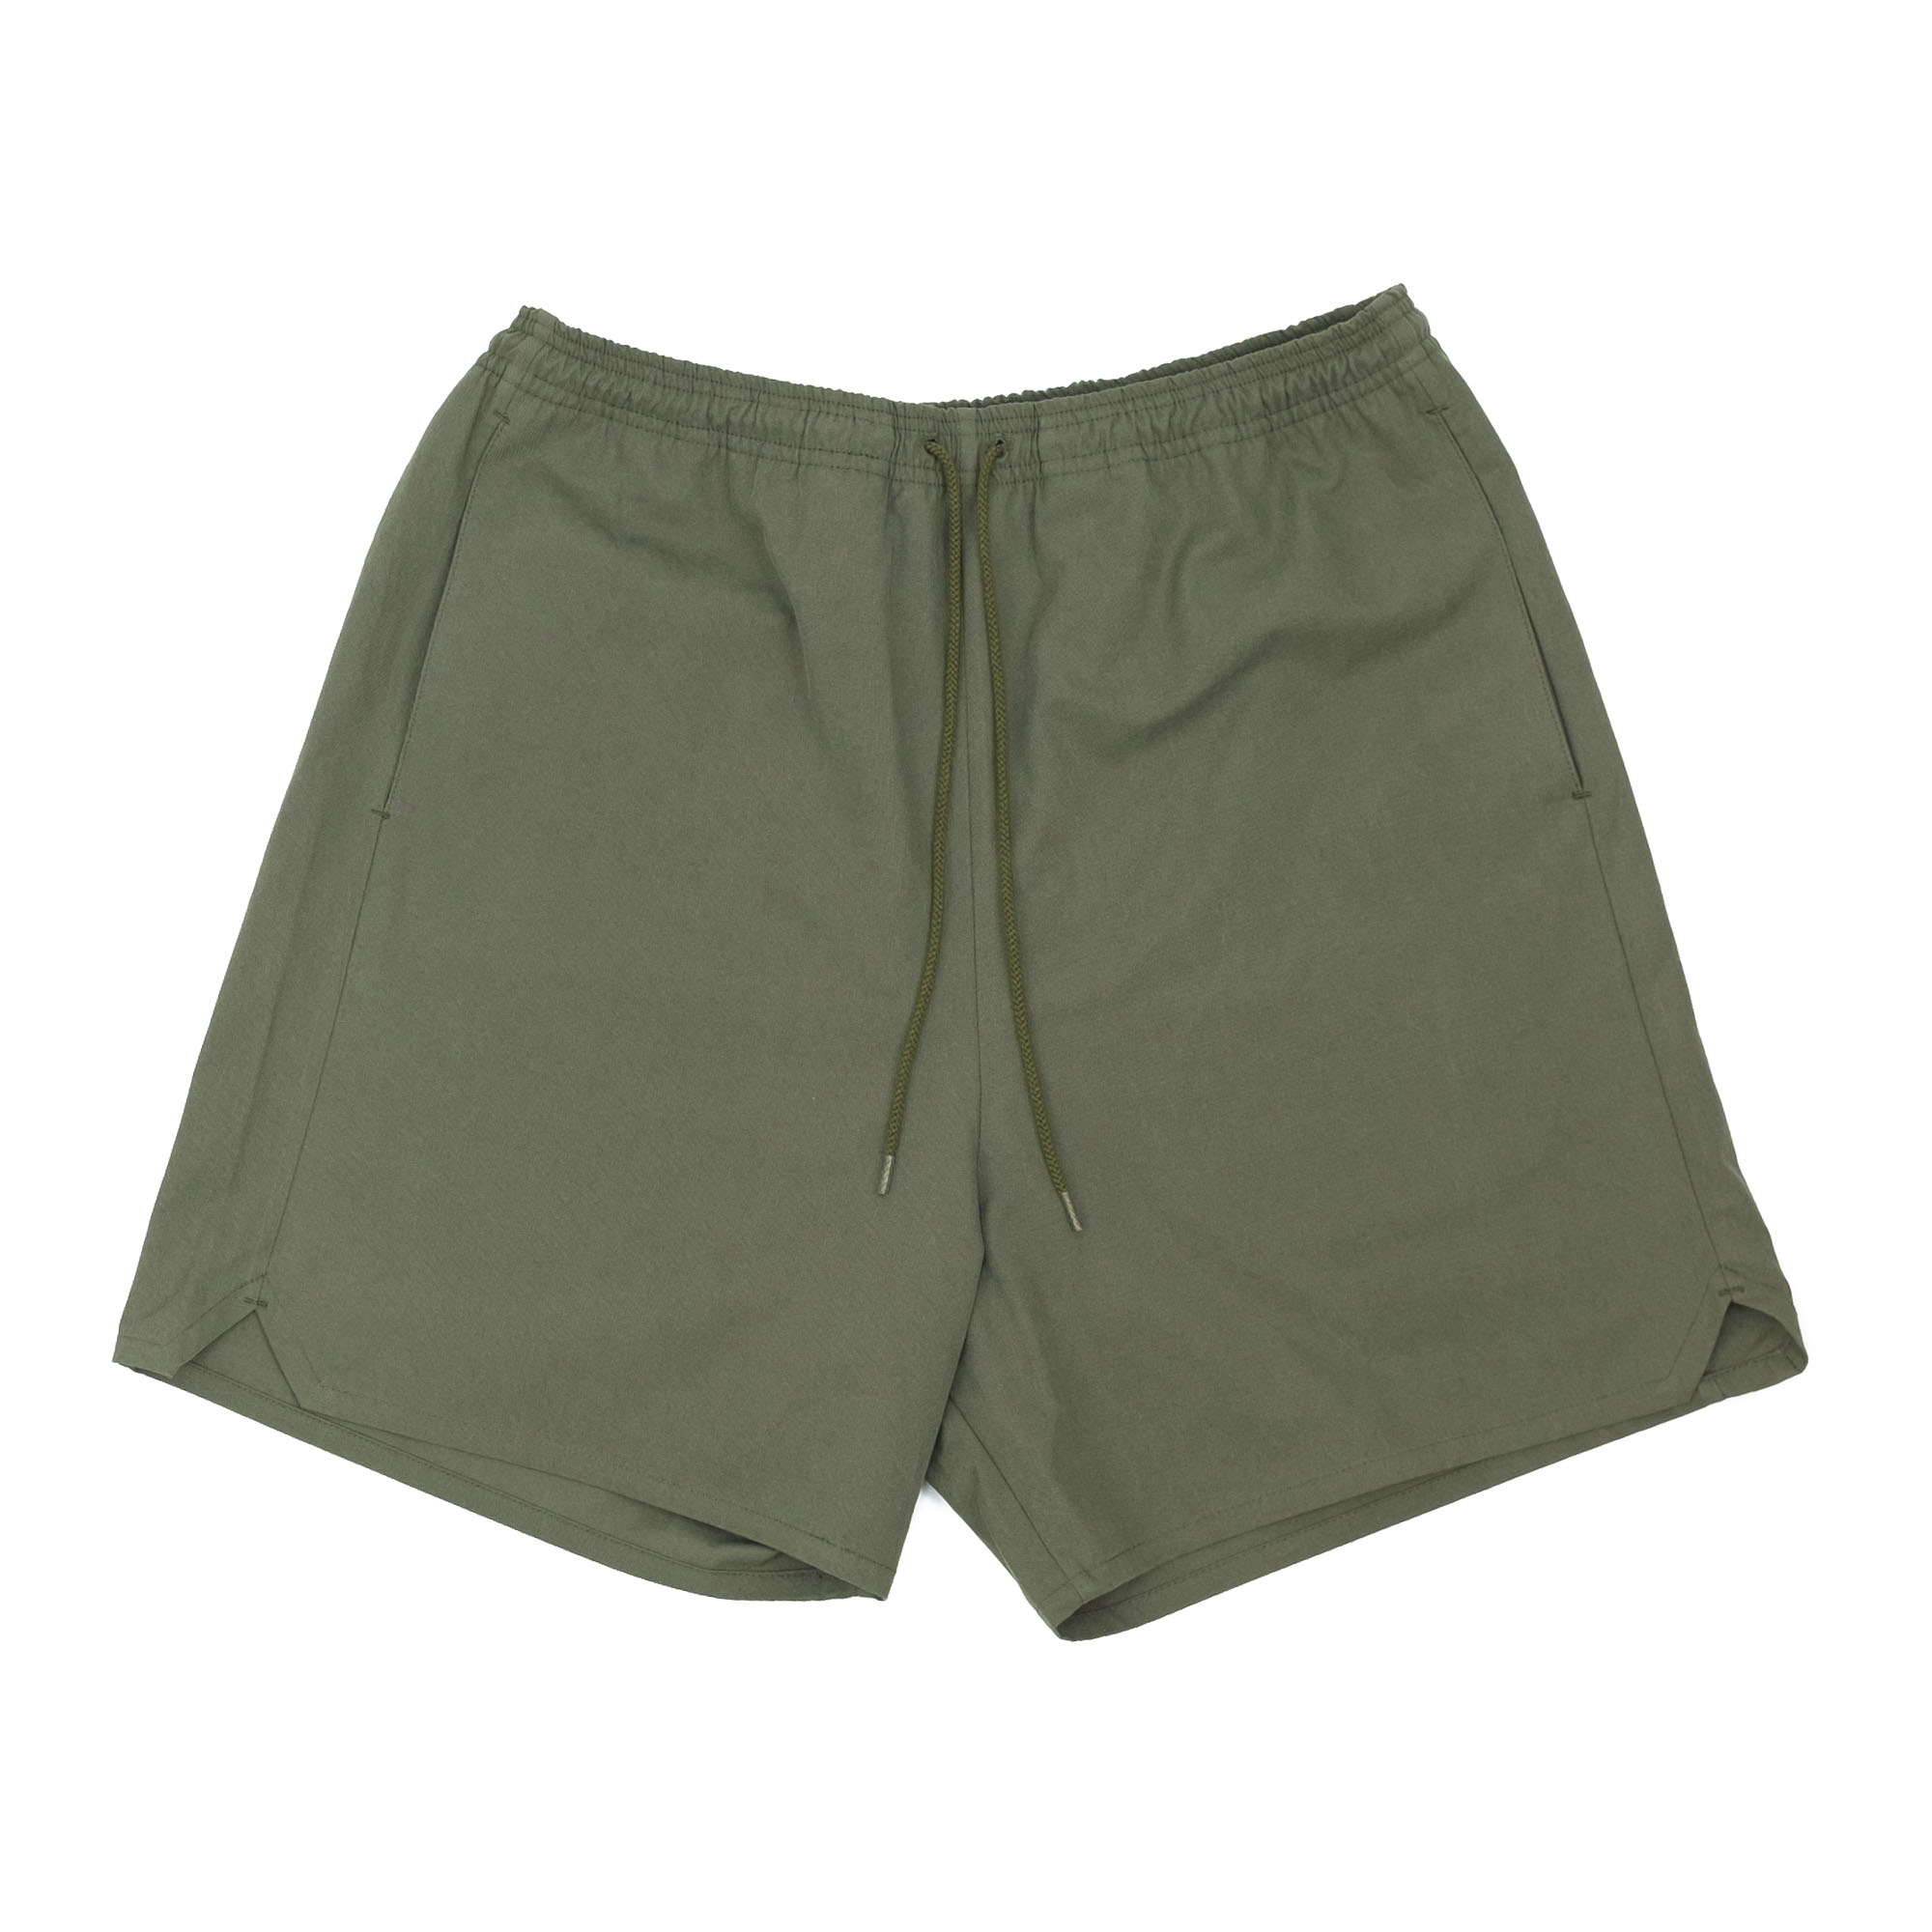 Sulfur Dyed Nidom Training Shorts Khaki 1